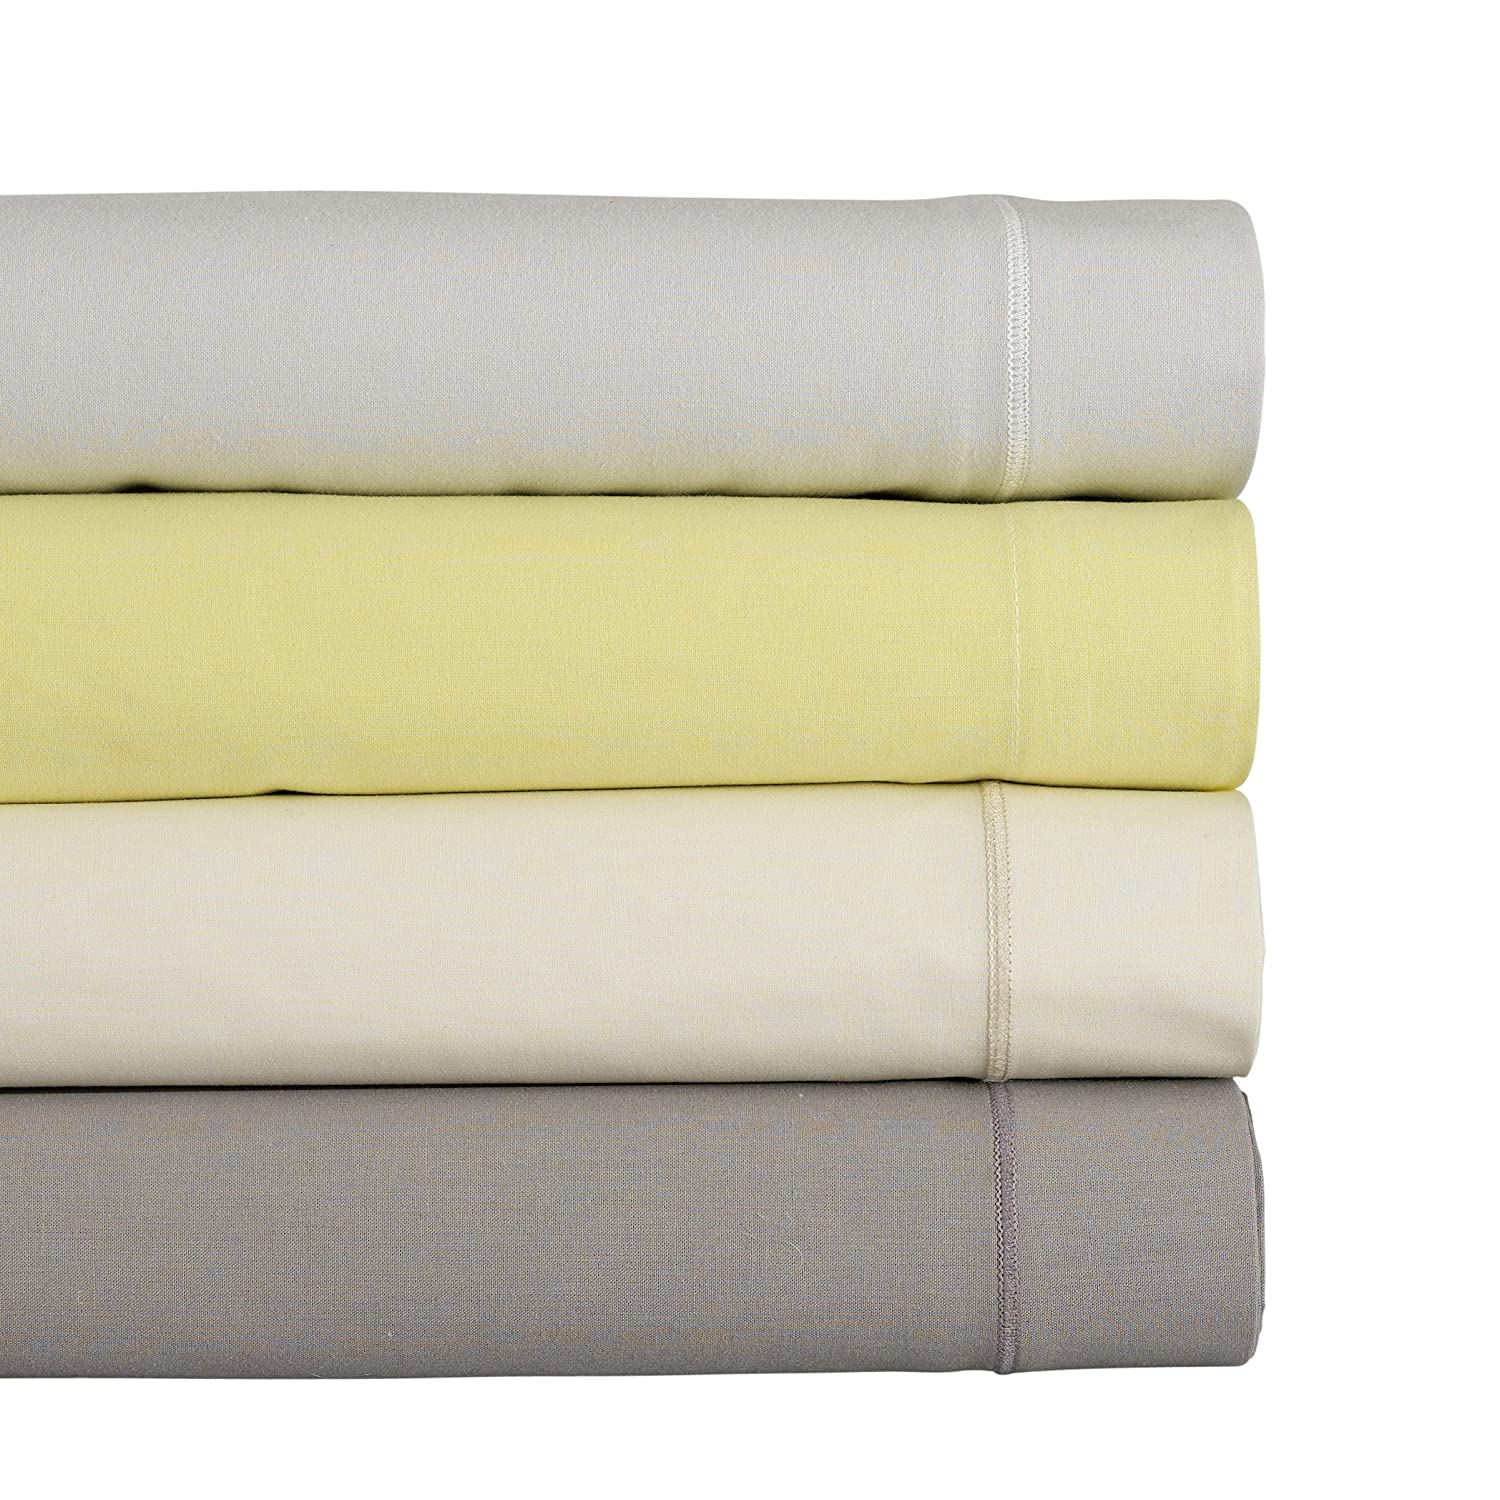 /Organic /118x180/cm Superior Quality/ /Baby Bed Linen P tit Basile/ 100/% Cotton 57/Thread Count//cm2 /Various Colours/ Young Child/